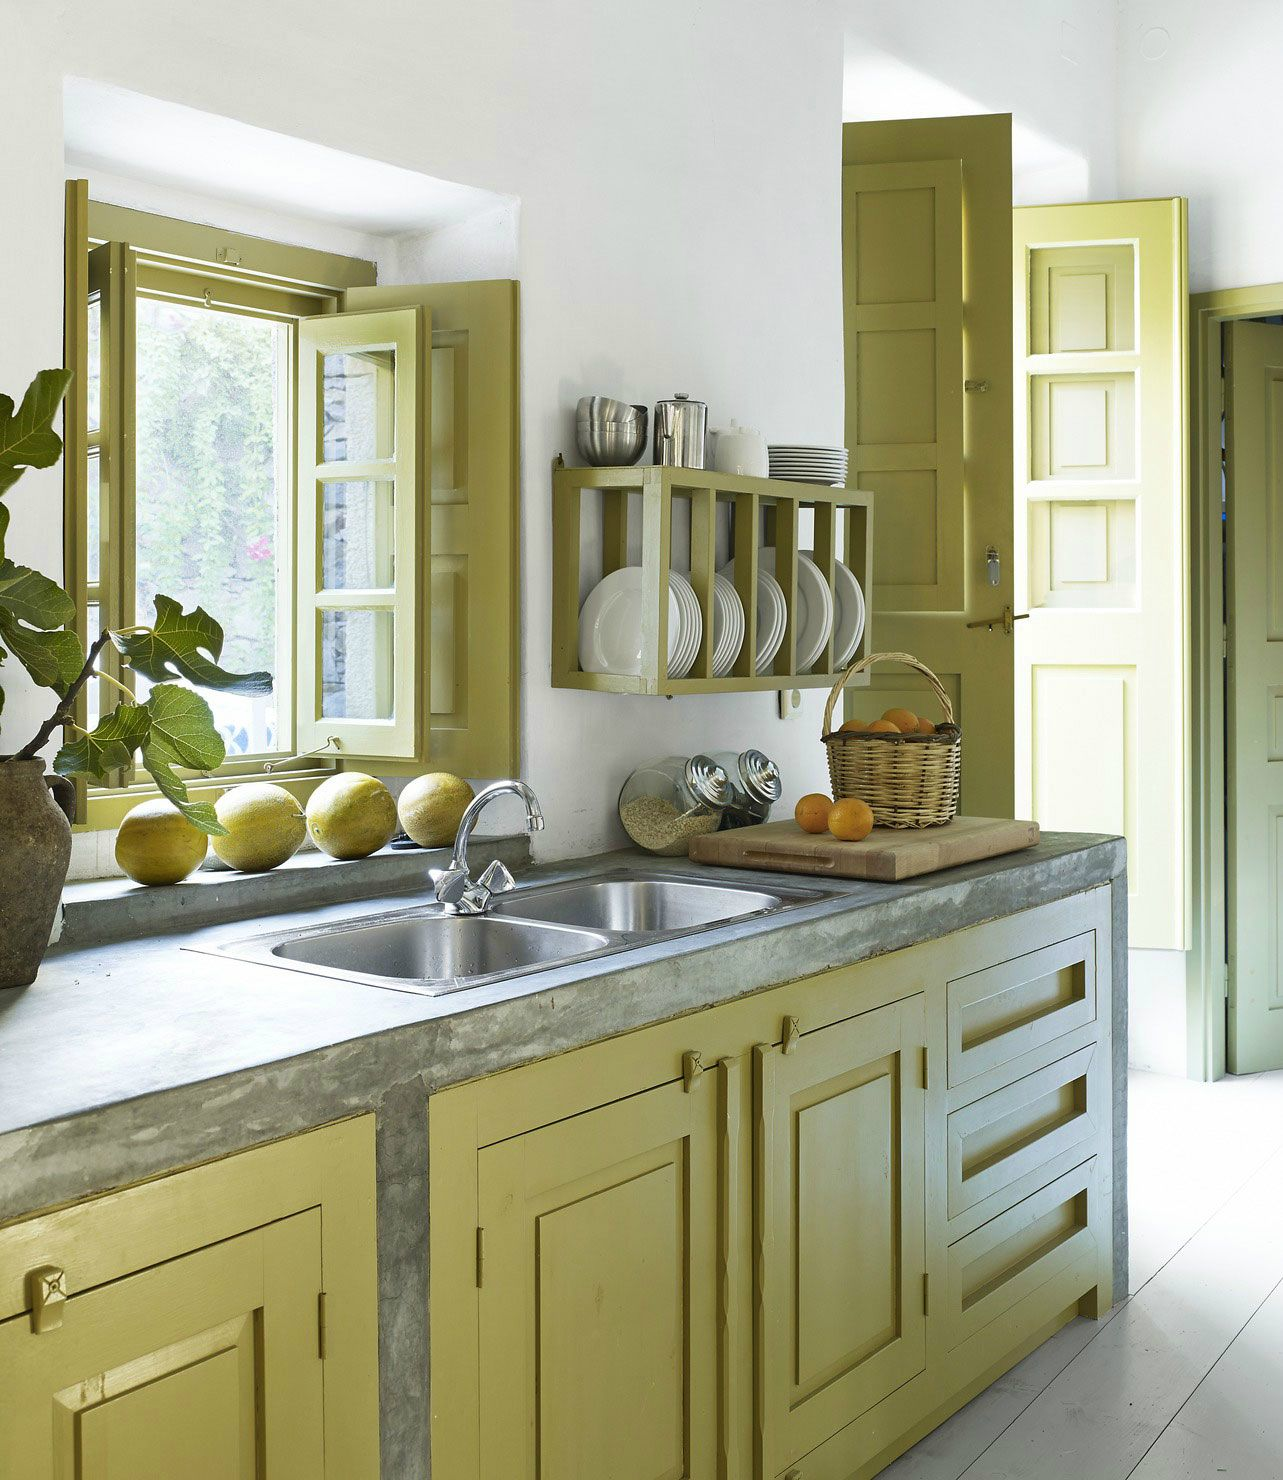 Elle decor predicts the color trends for 2017 yellow kitchen interior elle decor and kitchens - Trends contemporary kitchen cabinets for small space ...